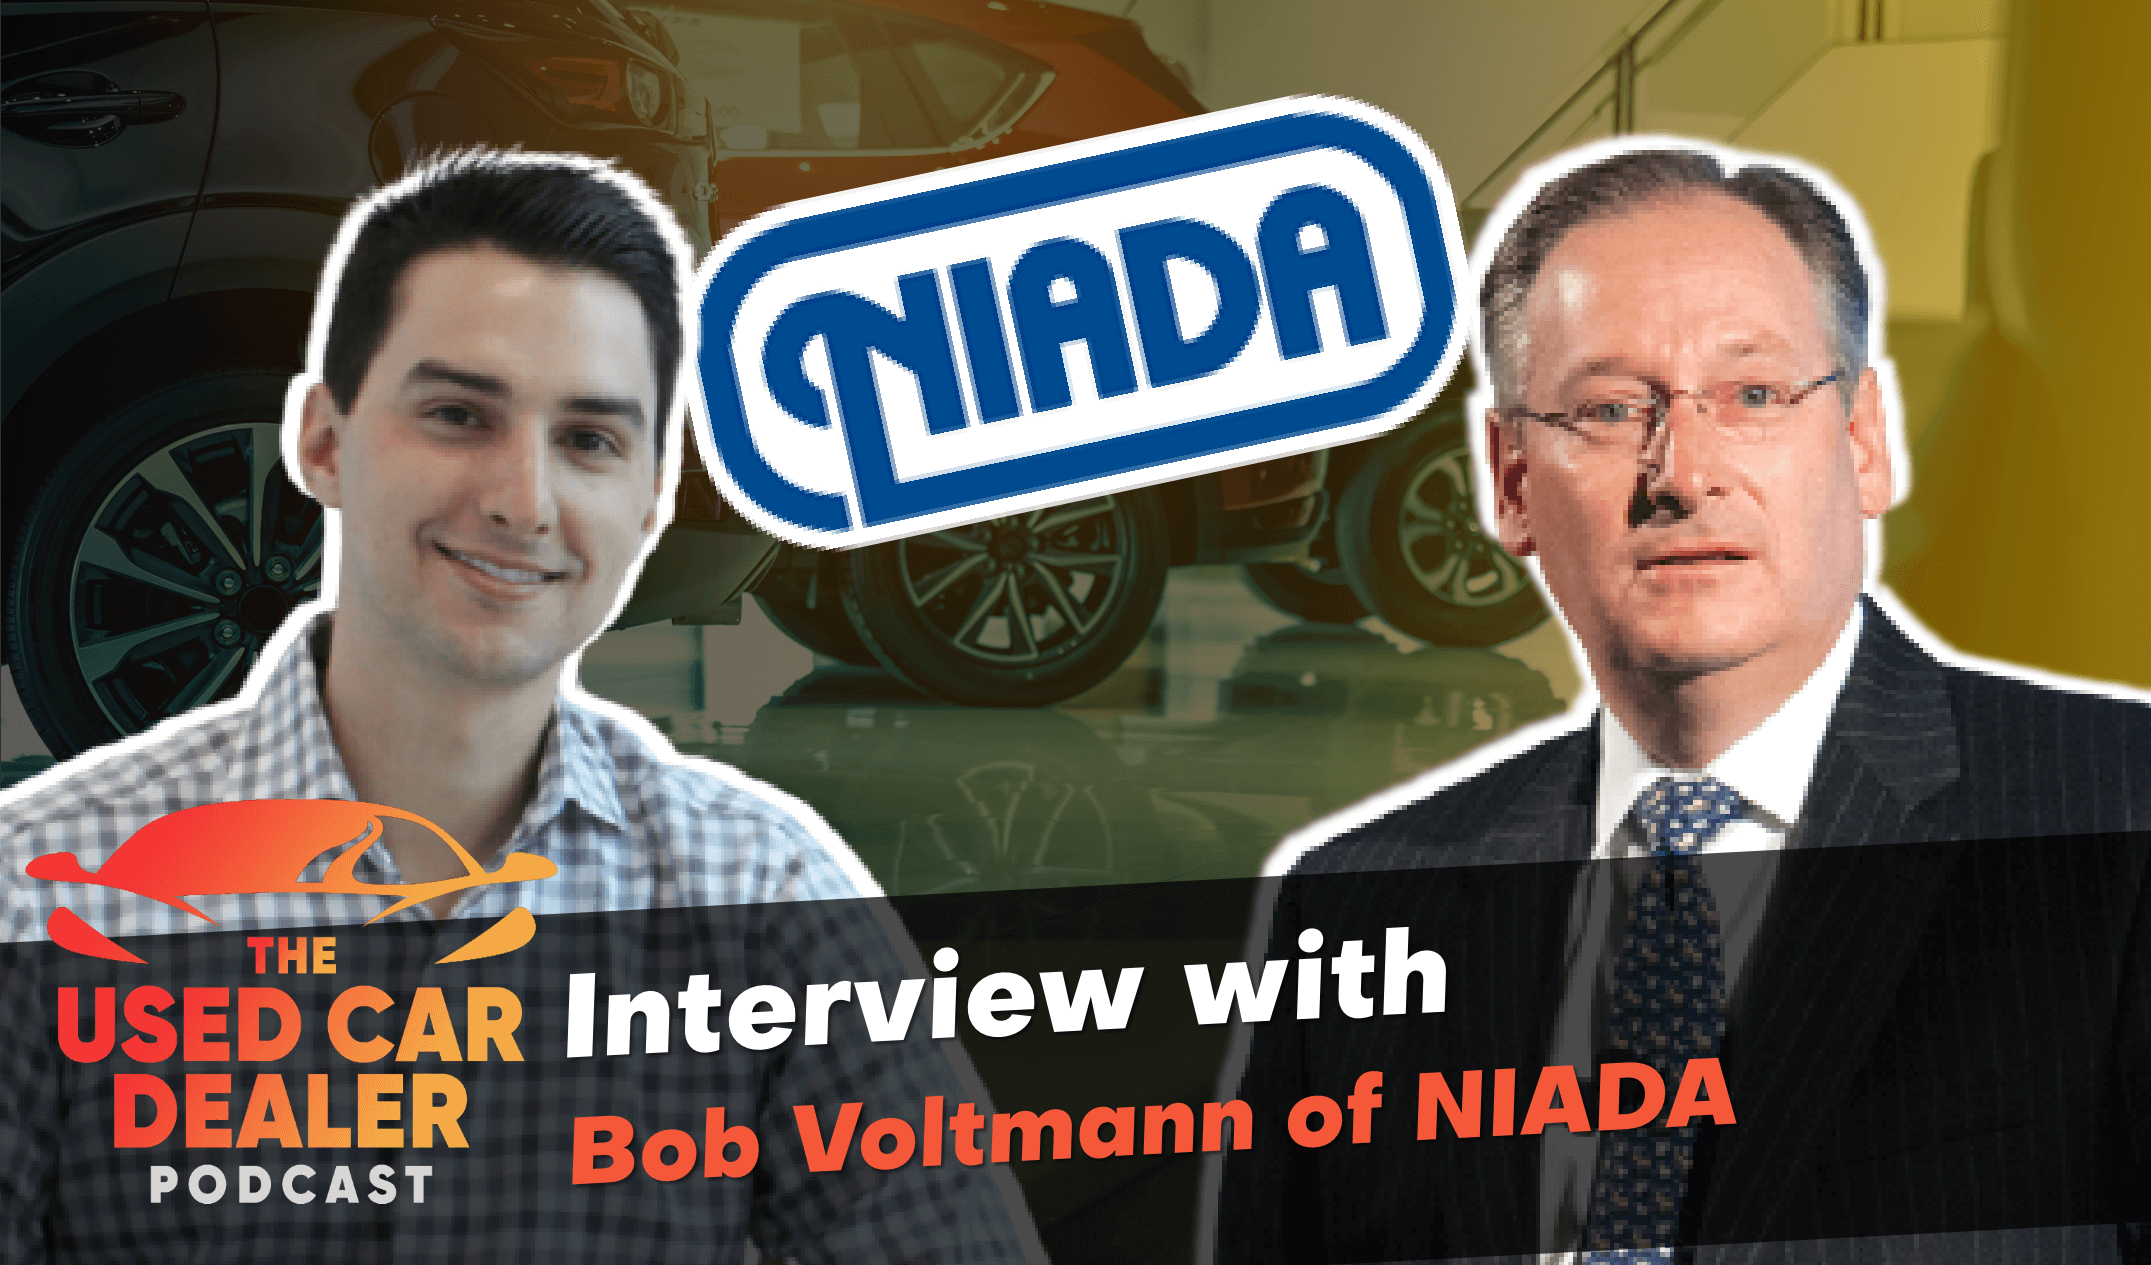 Interview with Bob Voltmann, the CEO of the NIADA